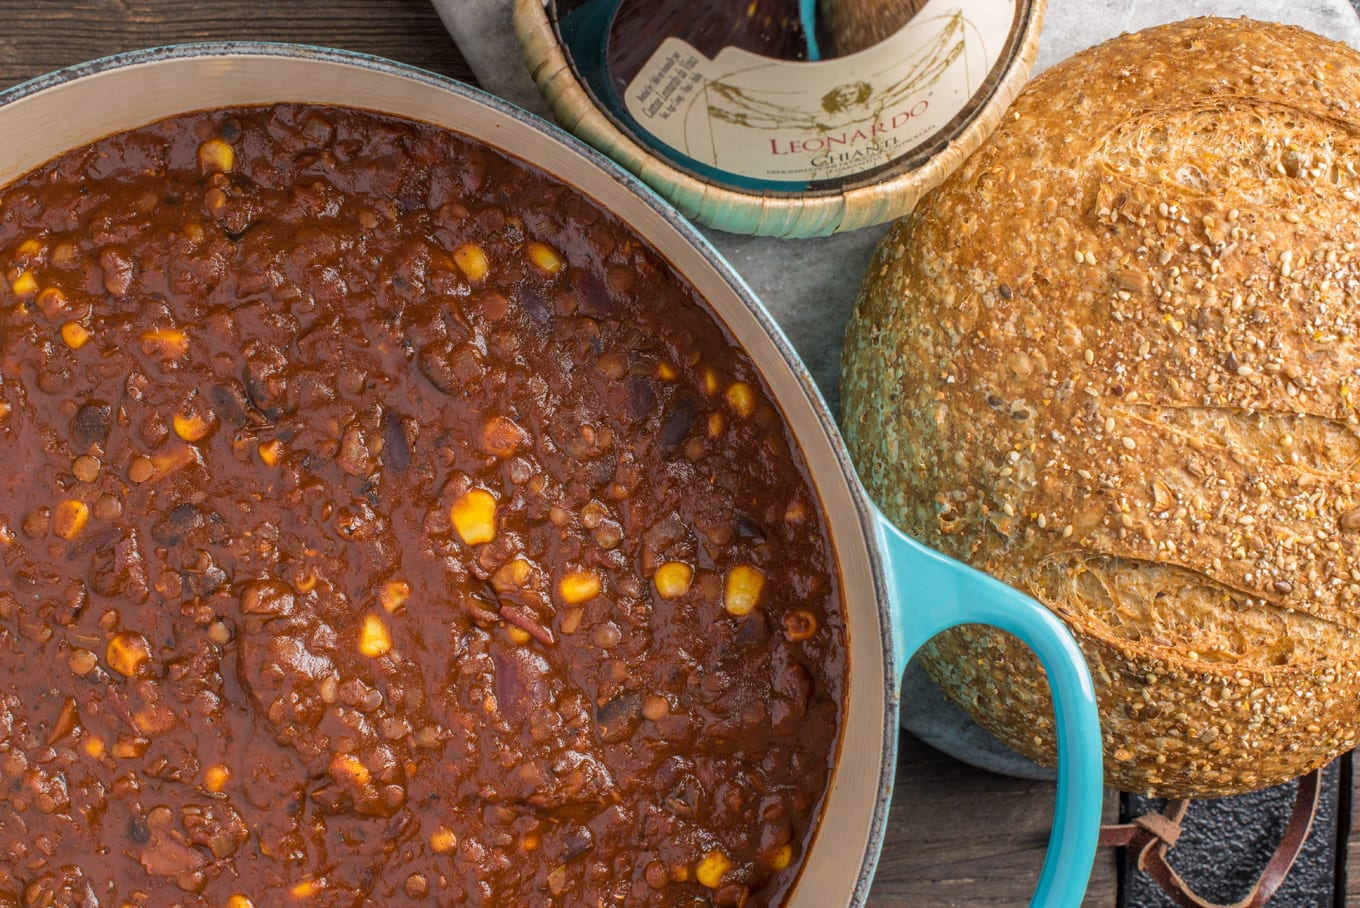 vegan mexican chili in pot with loaf of bread next to it